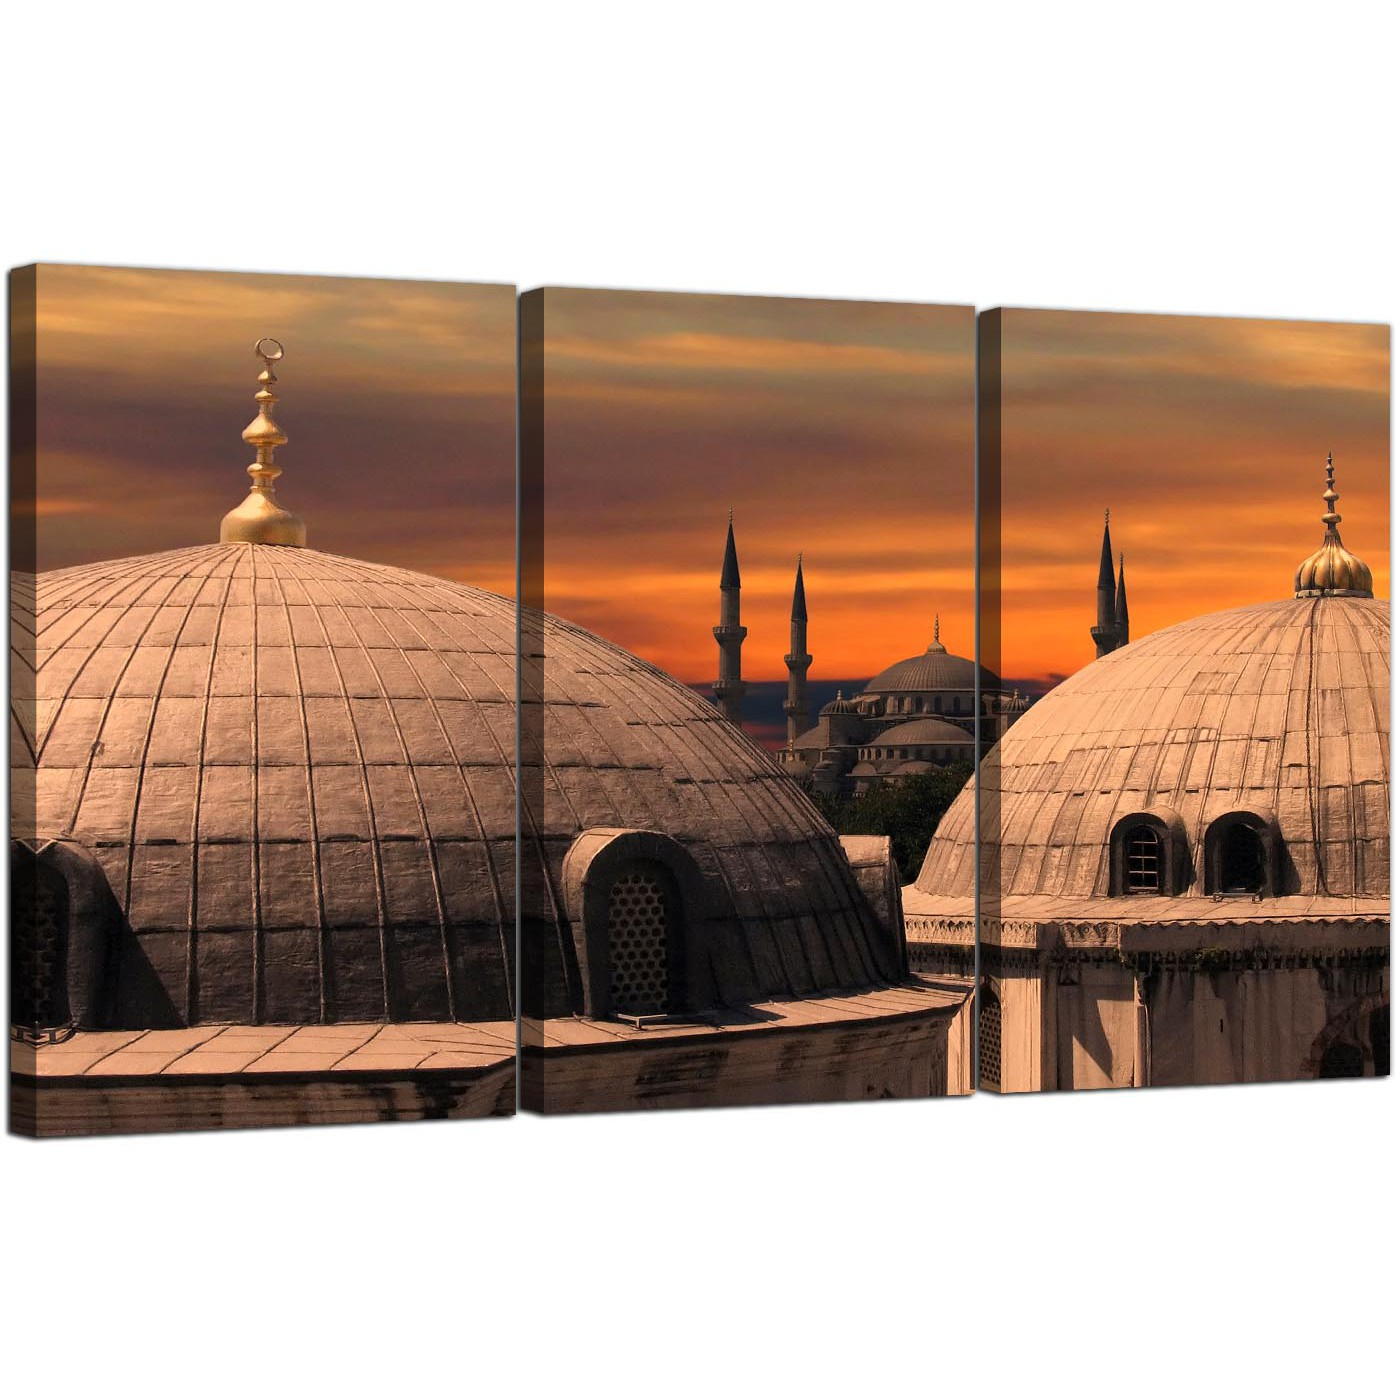 Bedroom Sets For Cheap Burnt Orange Bedroom Accessories Art Themed Bedroom Bedroom Sofa: Cheap Islamic Blue Mosque Canvas Prints Set Of 3 For Your